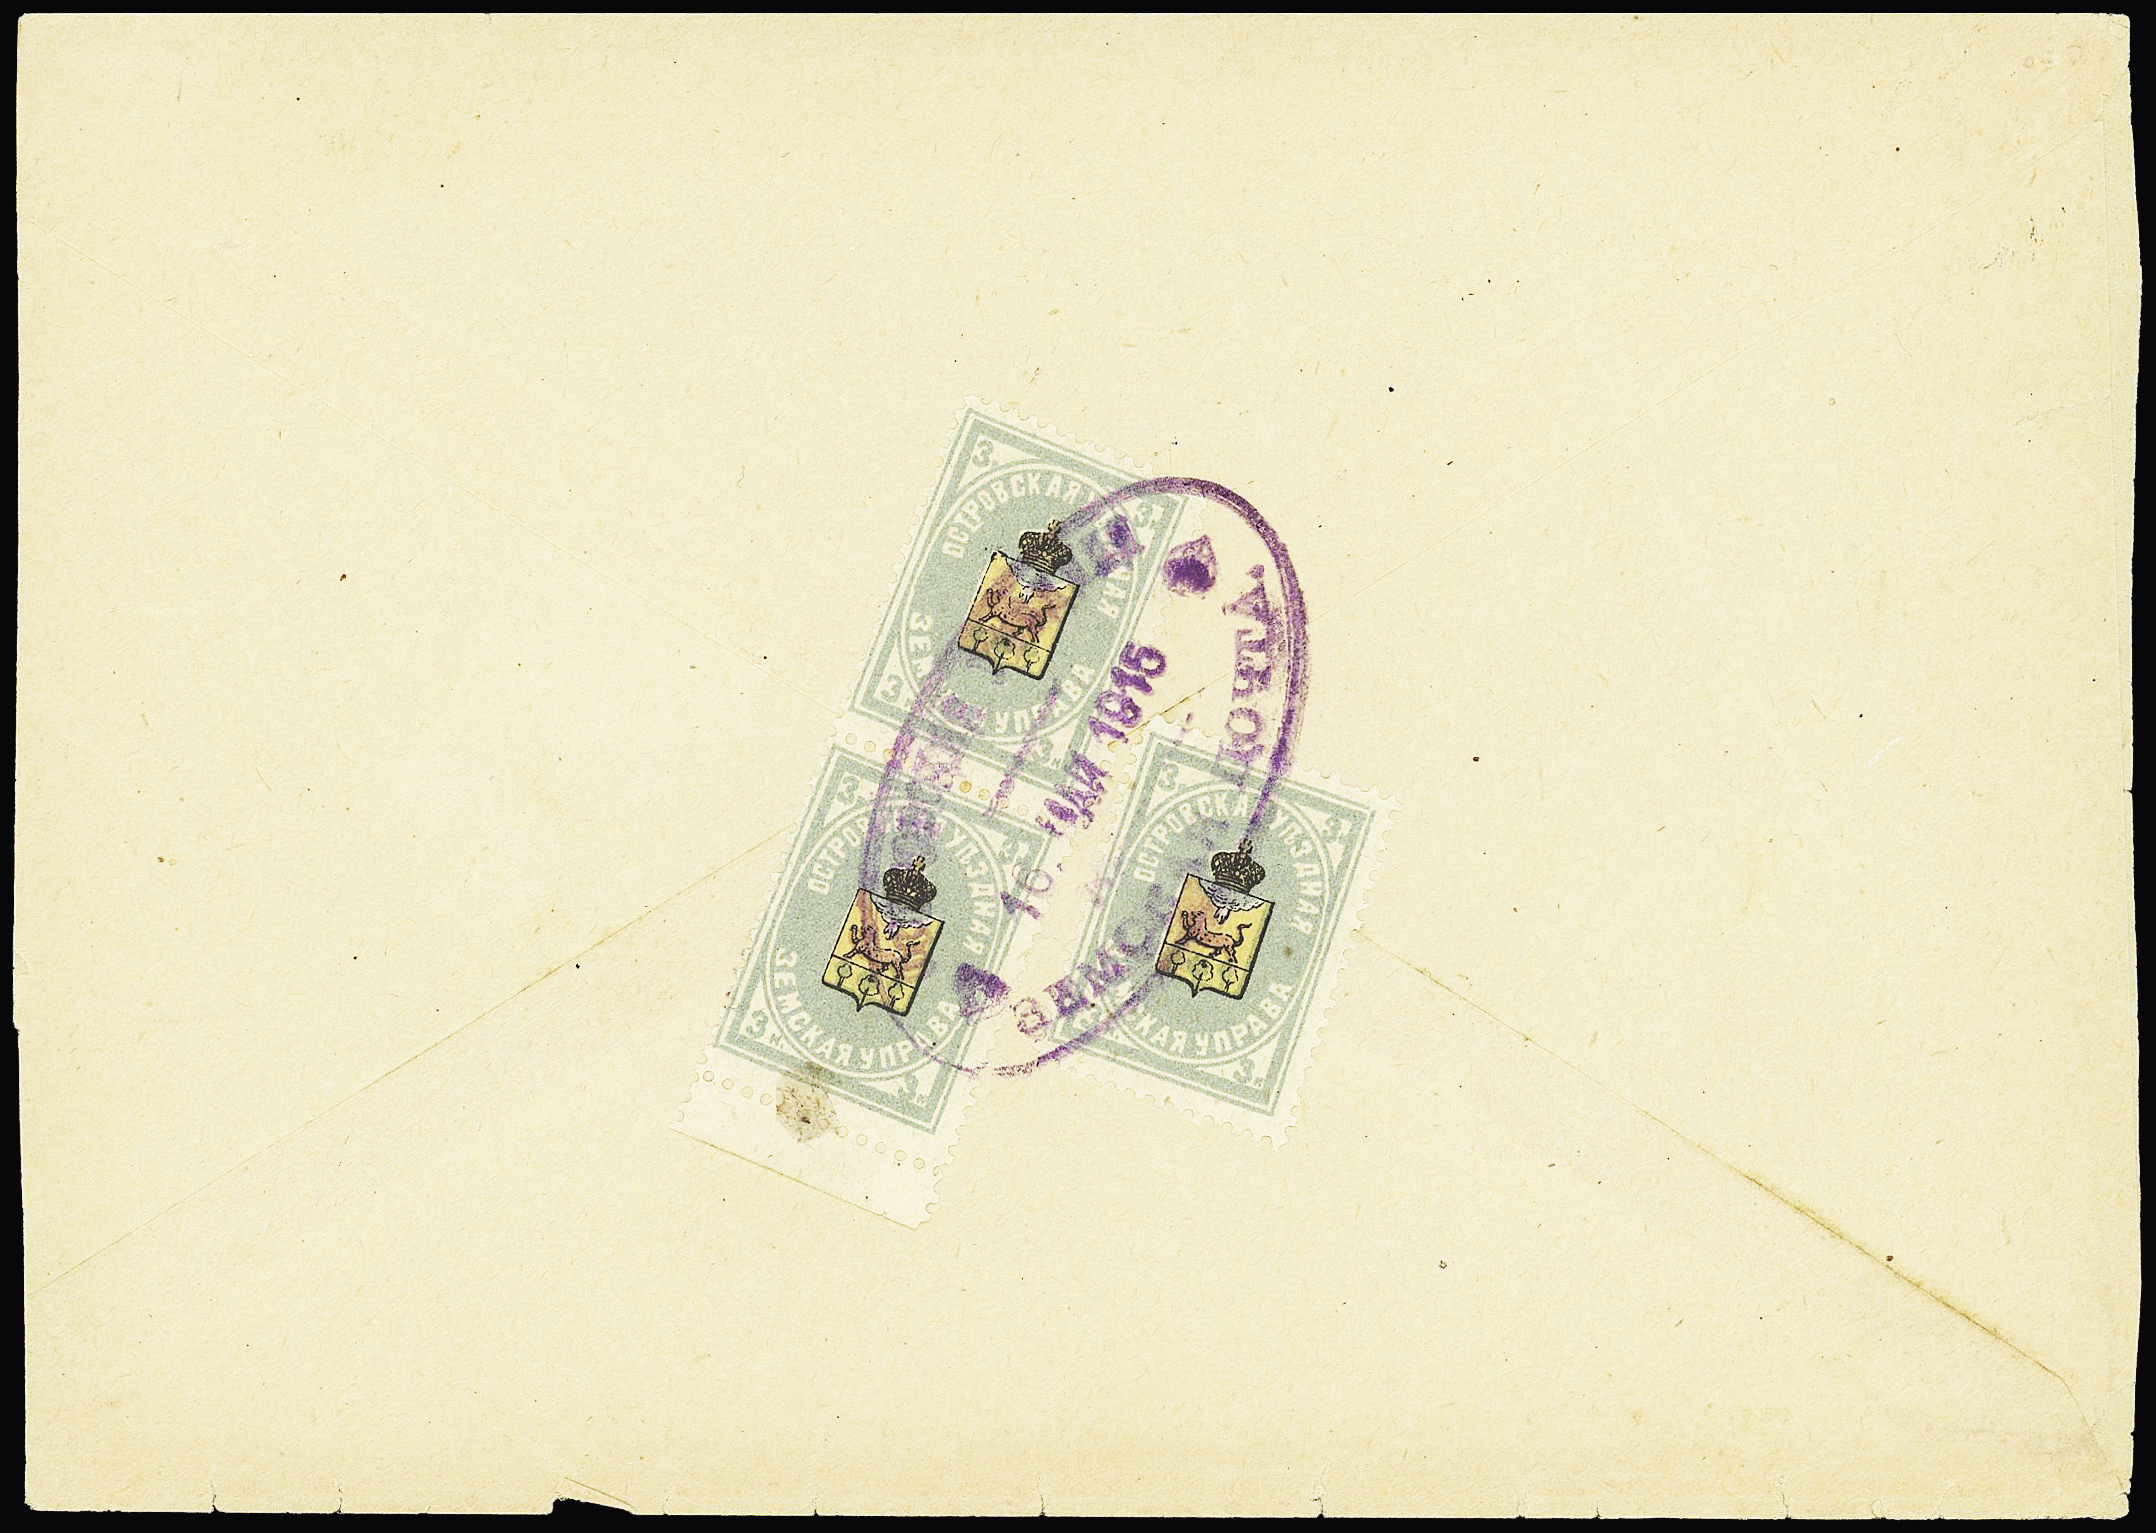 Lot 519 - Eastern Europe » RUSSIA - ZEMSTVOS » Ostrov (Pskov Government)  -  Le Timbre Classique SA SALE ON OFFERS N ° 37 PARIS